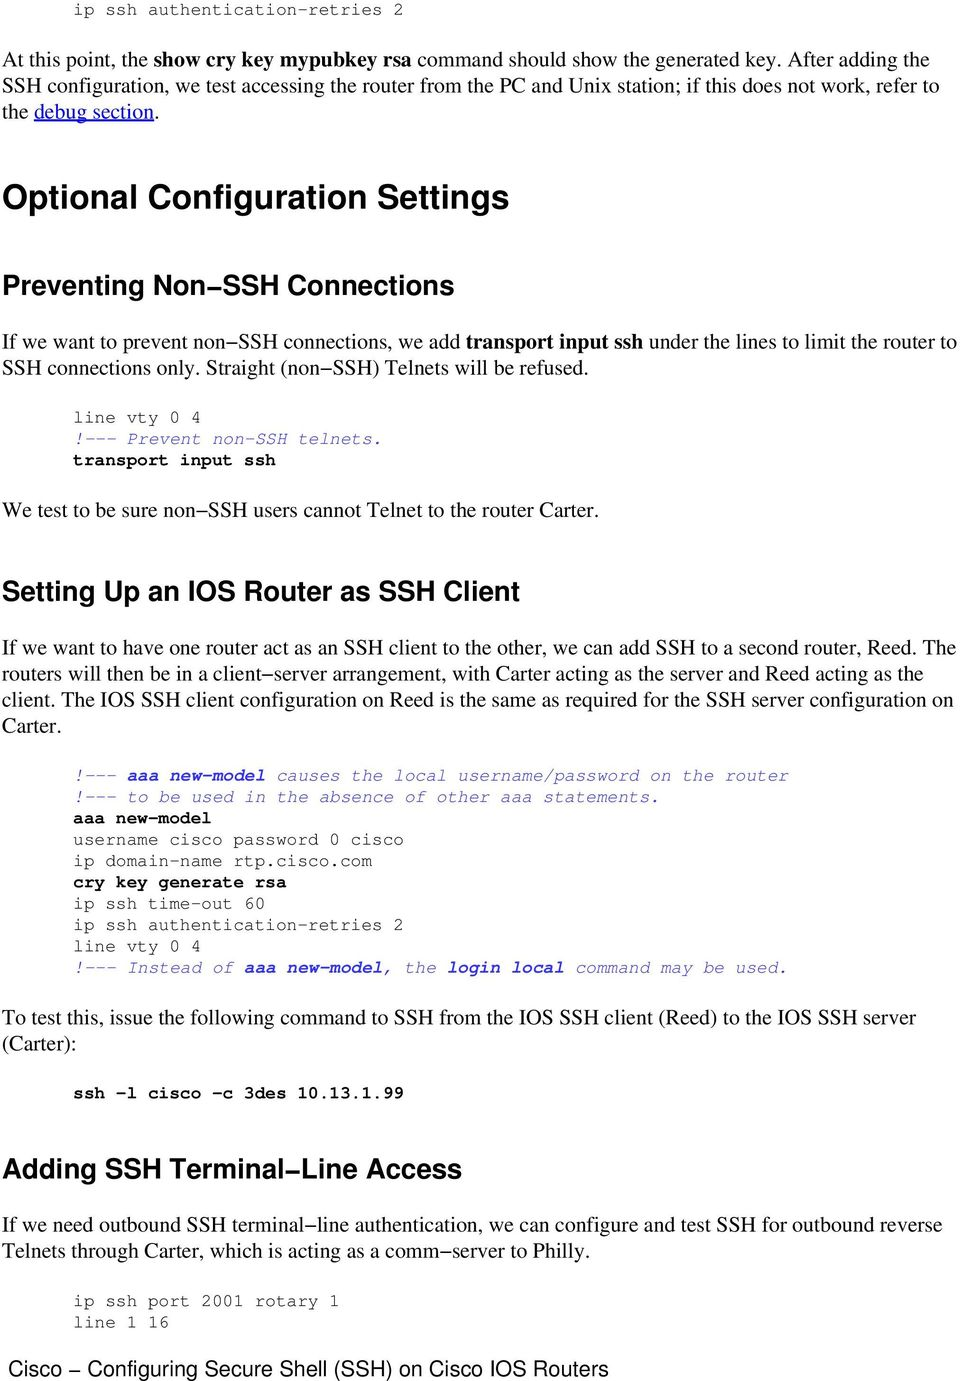 Cisco Configuring Secure Shell (SSH) on Cisco IOS Router - PDF